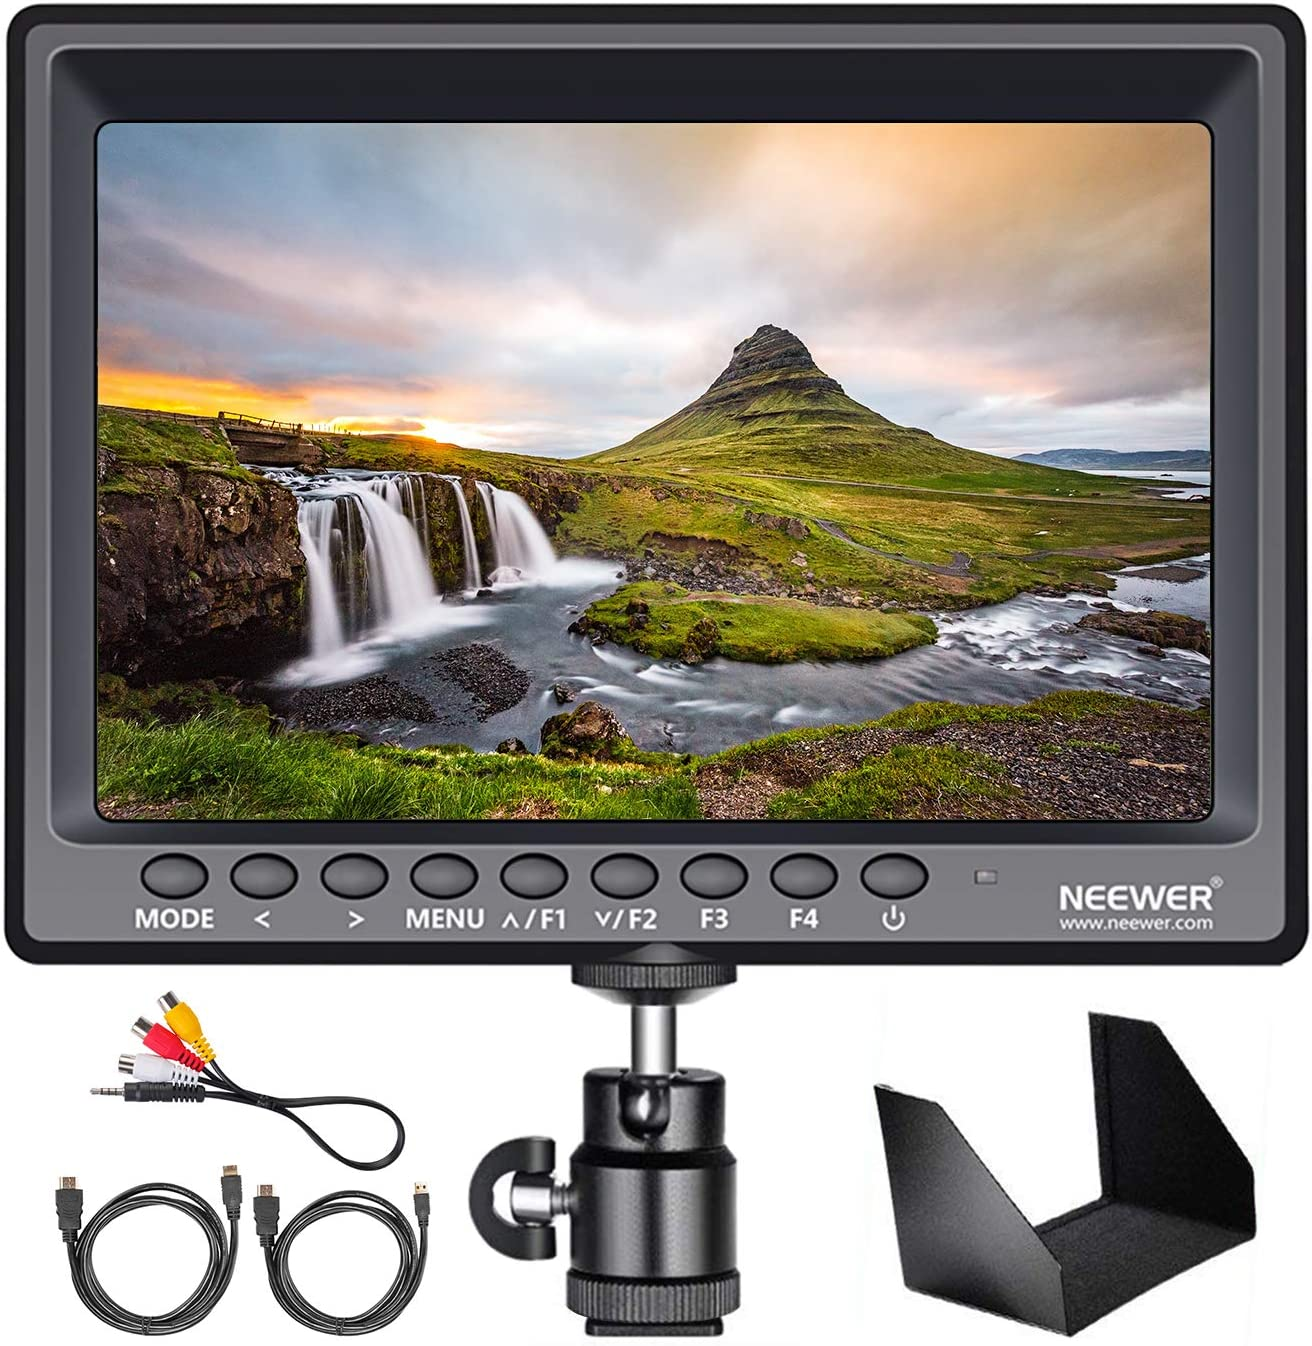 16:10 Ratio; for Sony Canon Nikon Olympus; Includes 1 US Plug Charger 1 Mini HDMI Cable 1 AV Cable for FPV, Neewer NW759 7 Inches 1280x800 IPS Screen Camera Field Monitor Battery Not Included